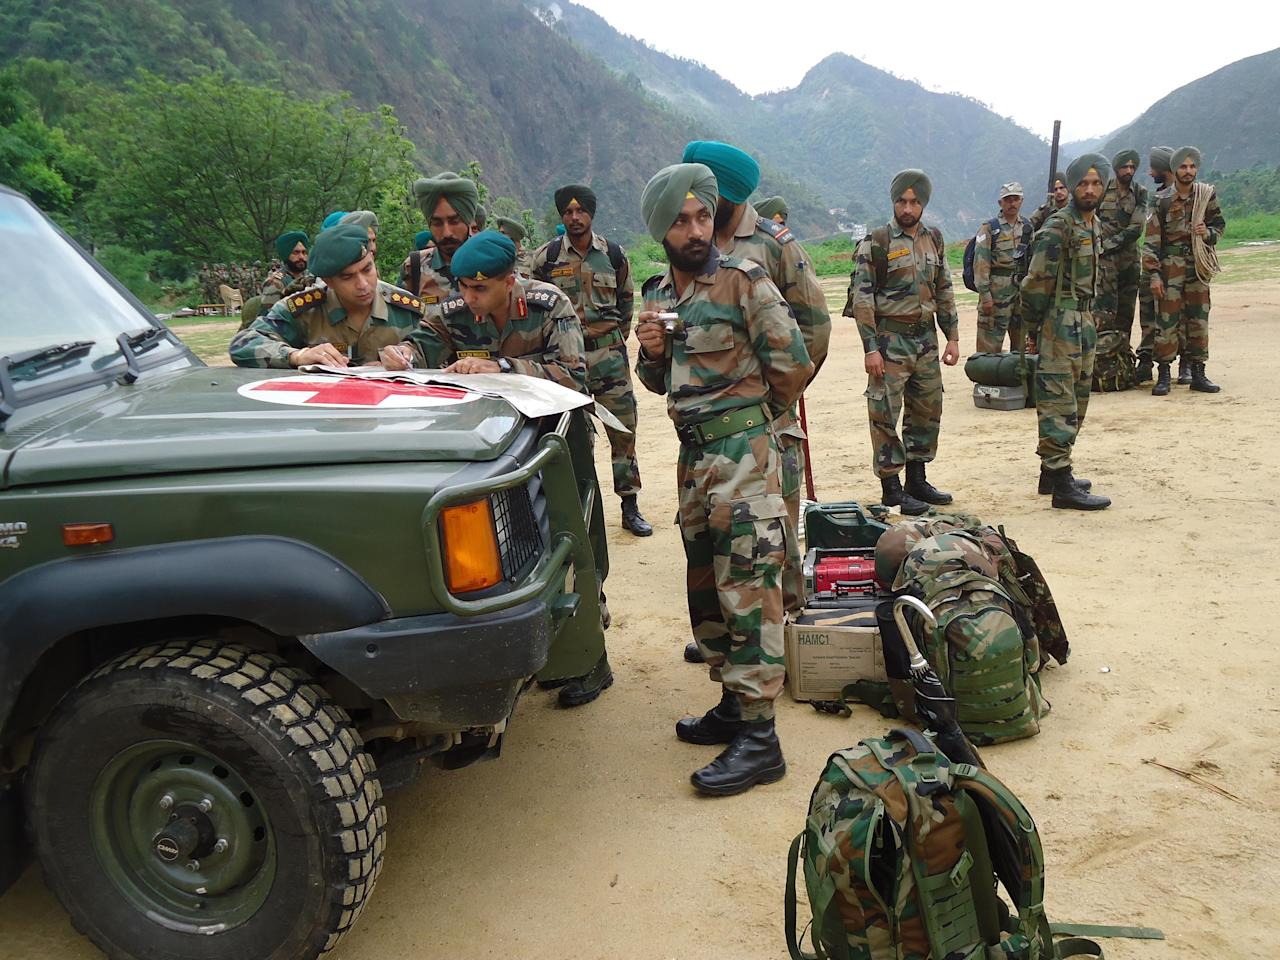 A team of army personal preparing for rescue of the people stranded at disaster affected areas on June 18, 2013 in Rudraprayag, India. Hundreds of people and tourists were stranded at various places after landslides triggered by incessant rains in Uttrakhand. (Photo by Badri Nautiyal/Hindustan Times via Getty Images)